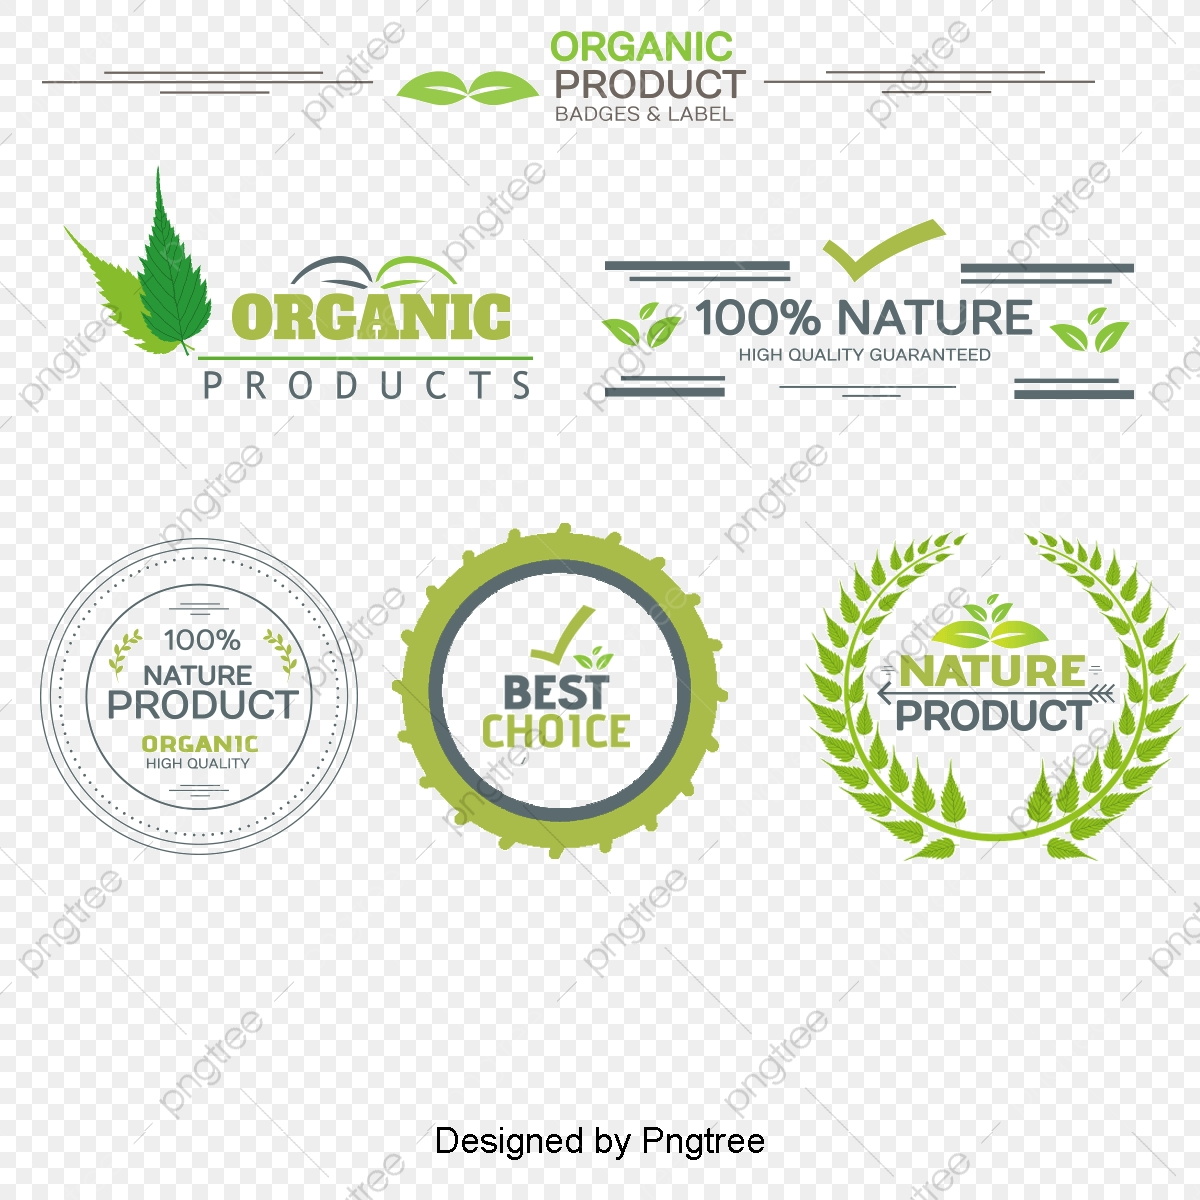 Organic Health Food Png Free Organic Health Food Png Transparent Images 109476 Pngio